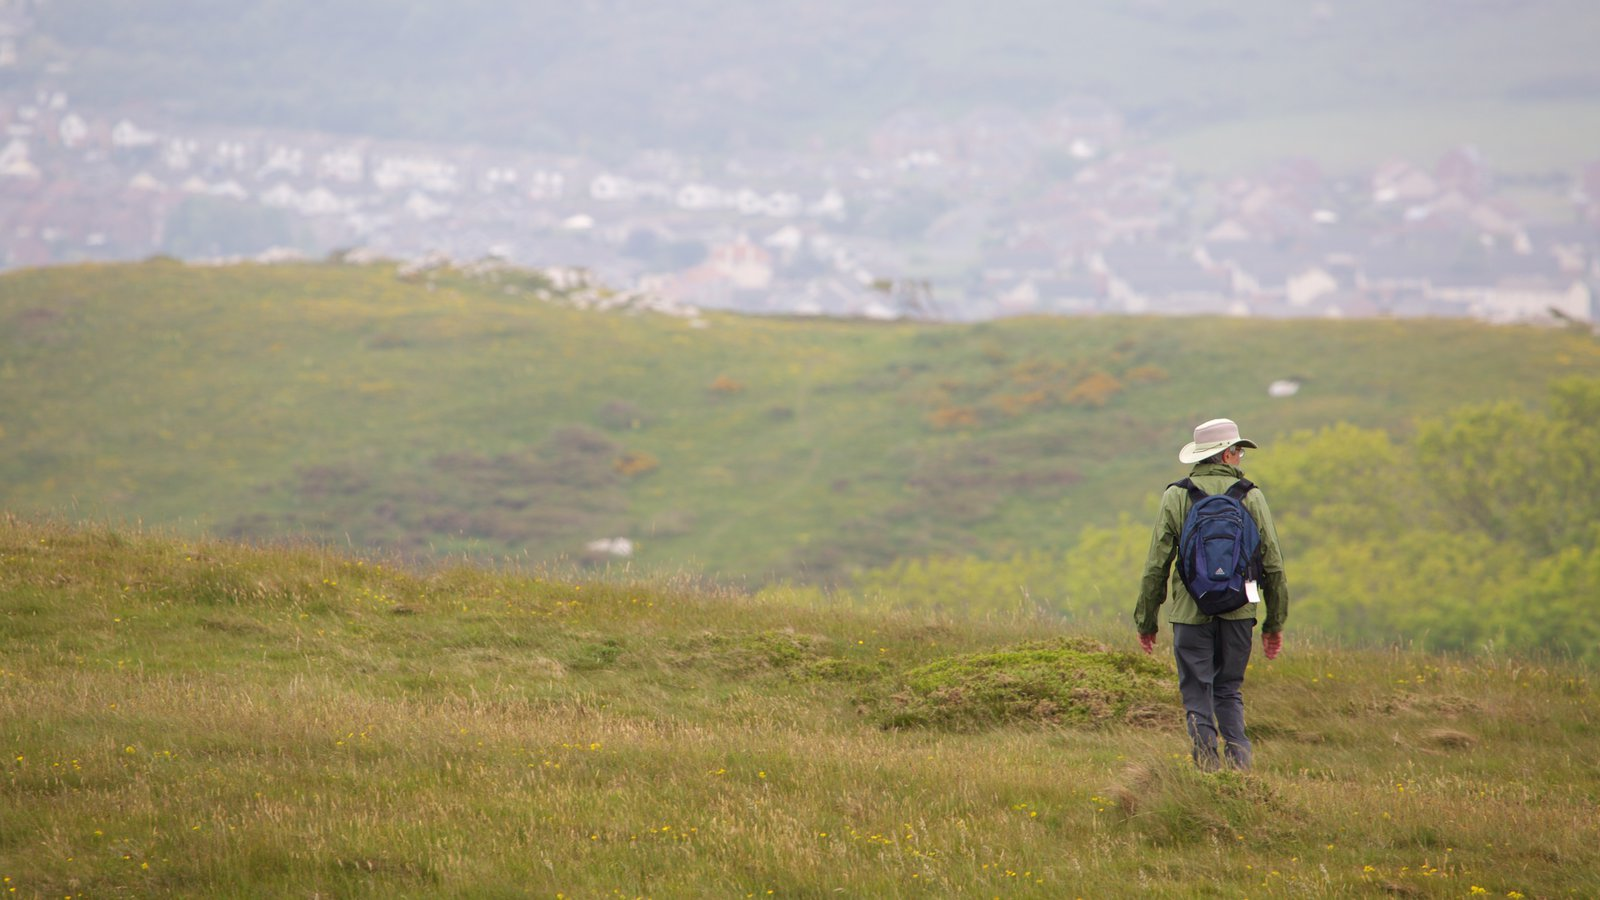 Great Orme featuring farmland and hiking or walking as well as an individual male